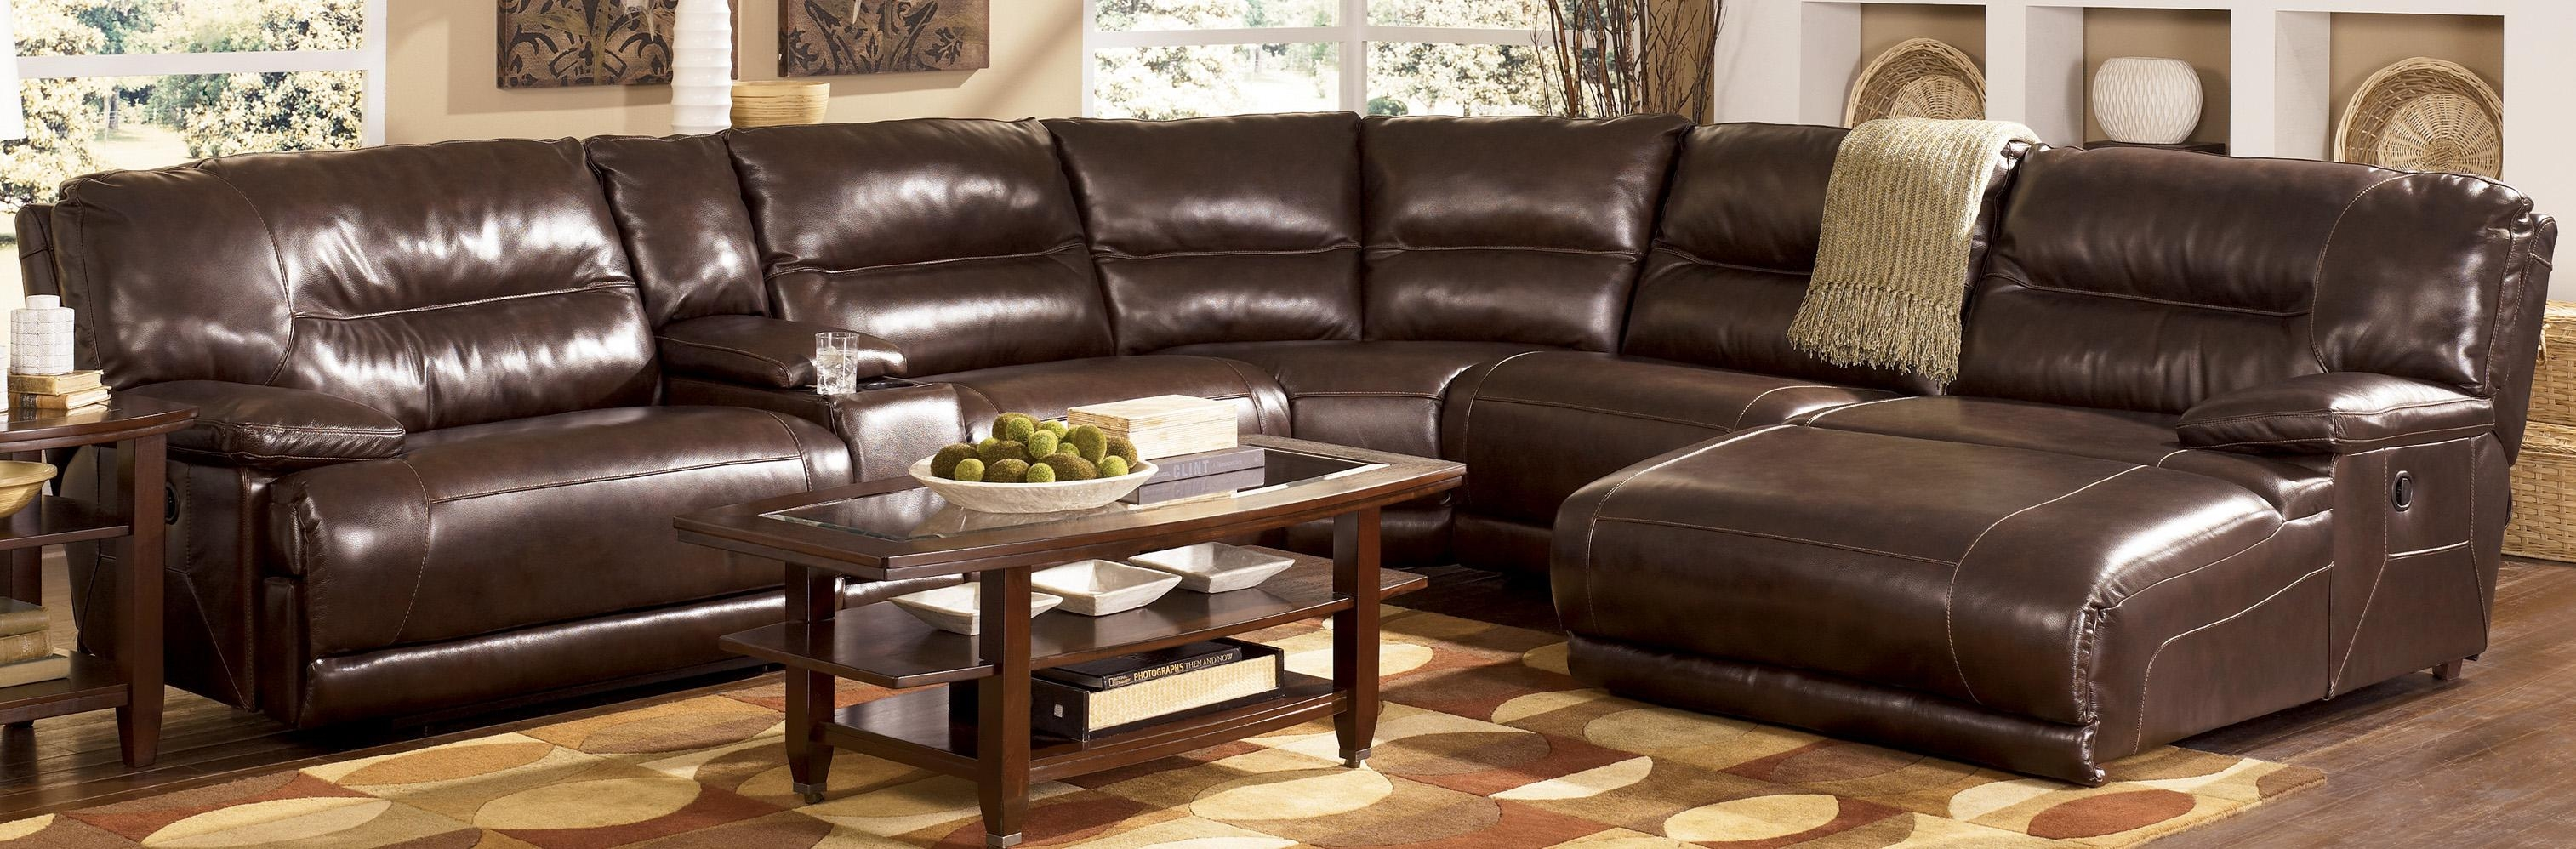 Chair & Sofa: Have An Interesting Living Room With Ashley Within Faux Leather Sectional Sofas (Image 3 of 15)